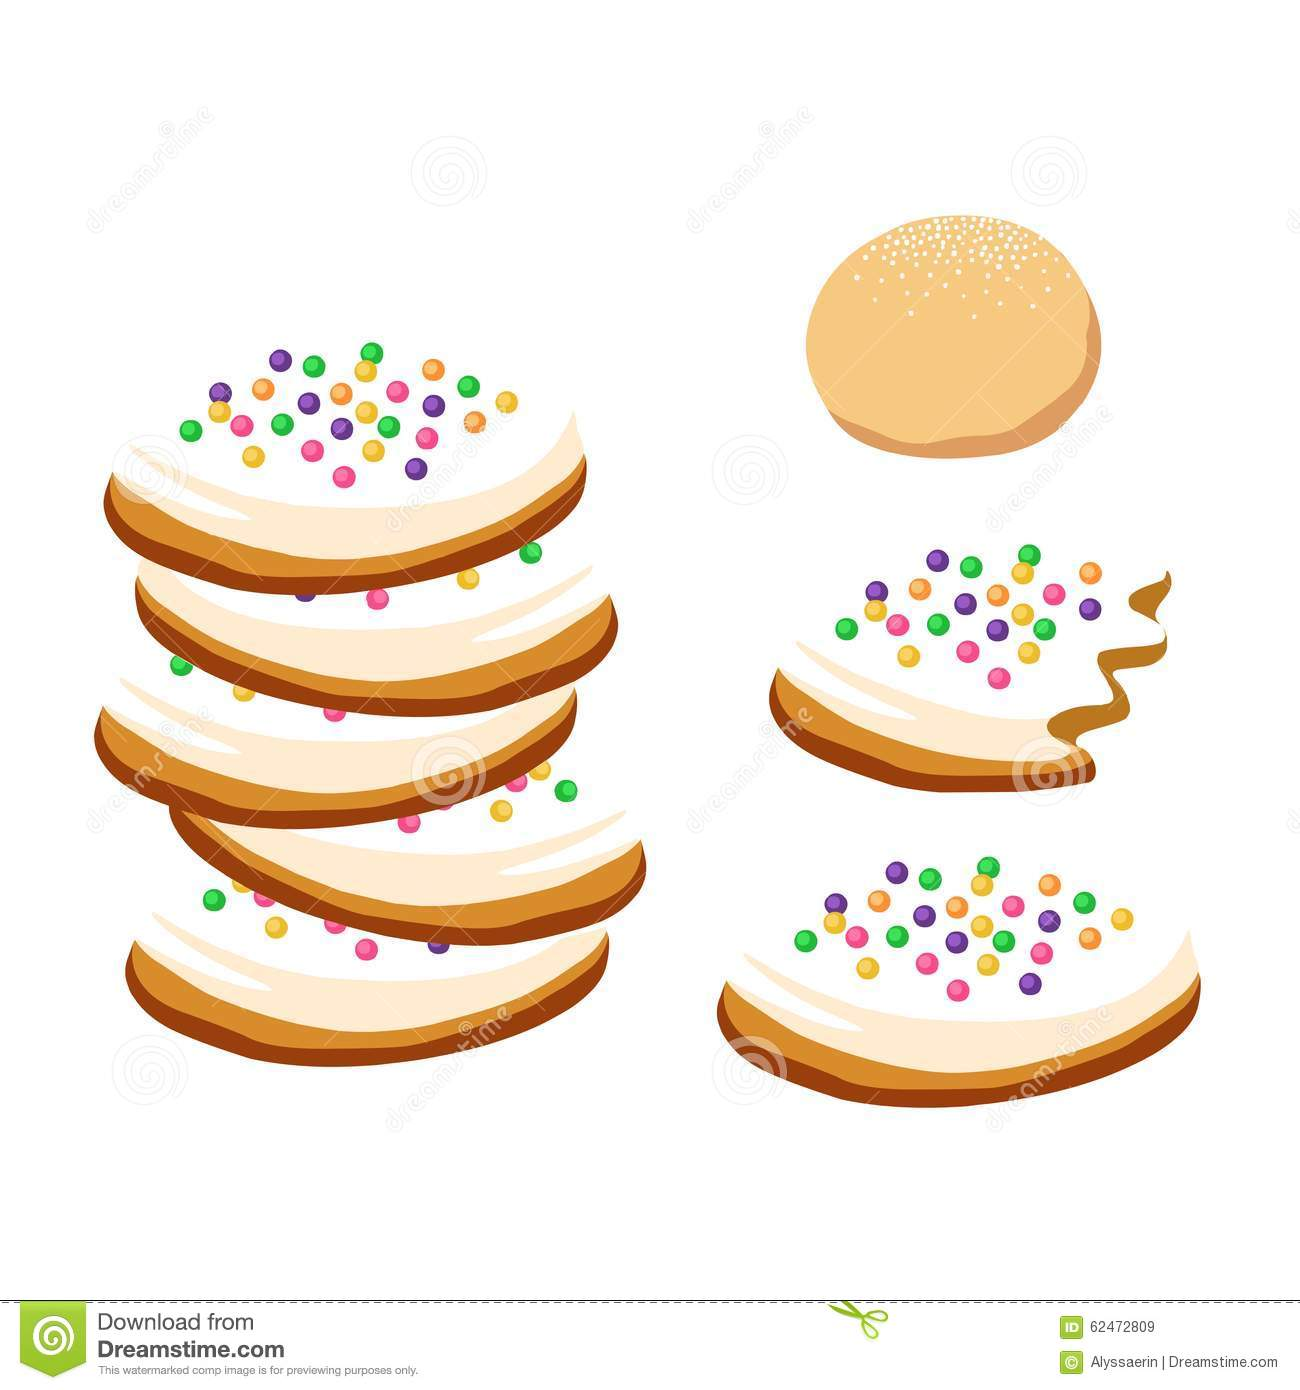 sugar cookies with sprinkles stock vector illustration of dough rh dreamstime com Chocolate Chip Clip Art Chocolate Chip Clip Art